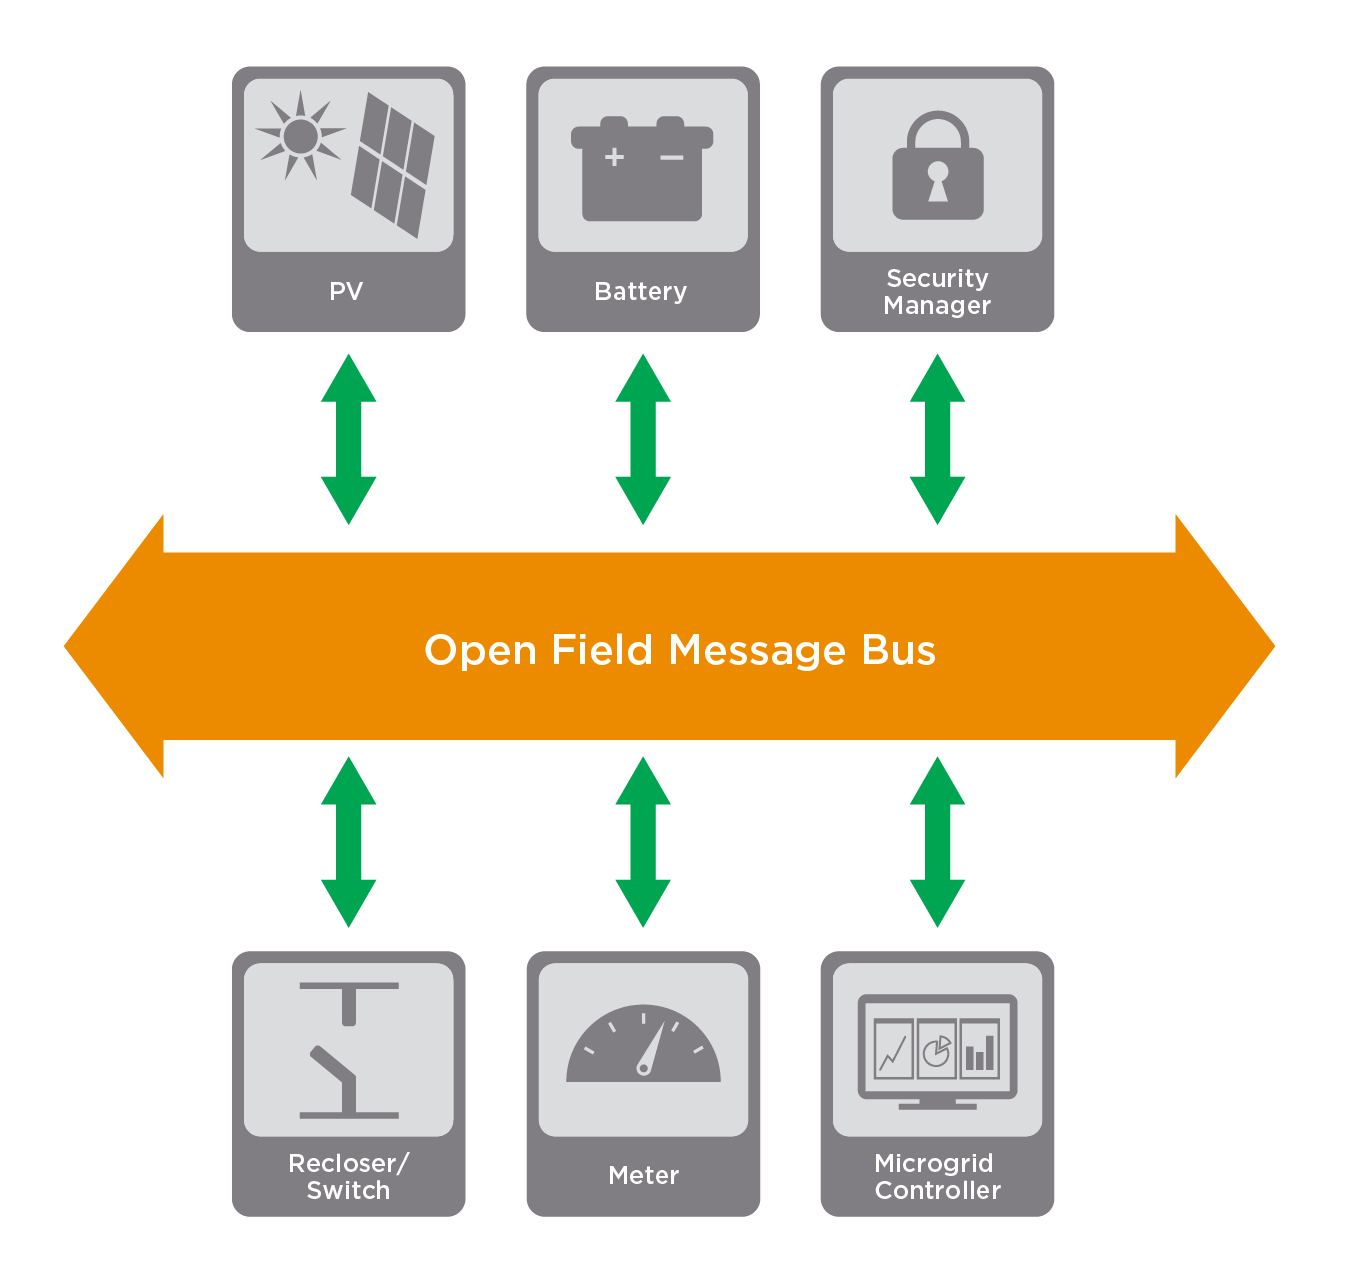 Open Field Message Bus diagram